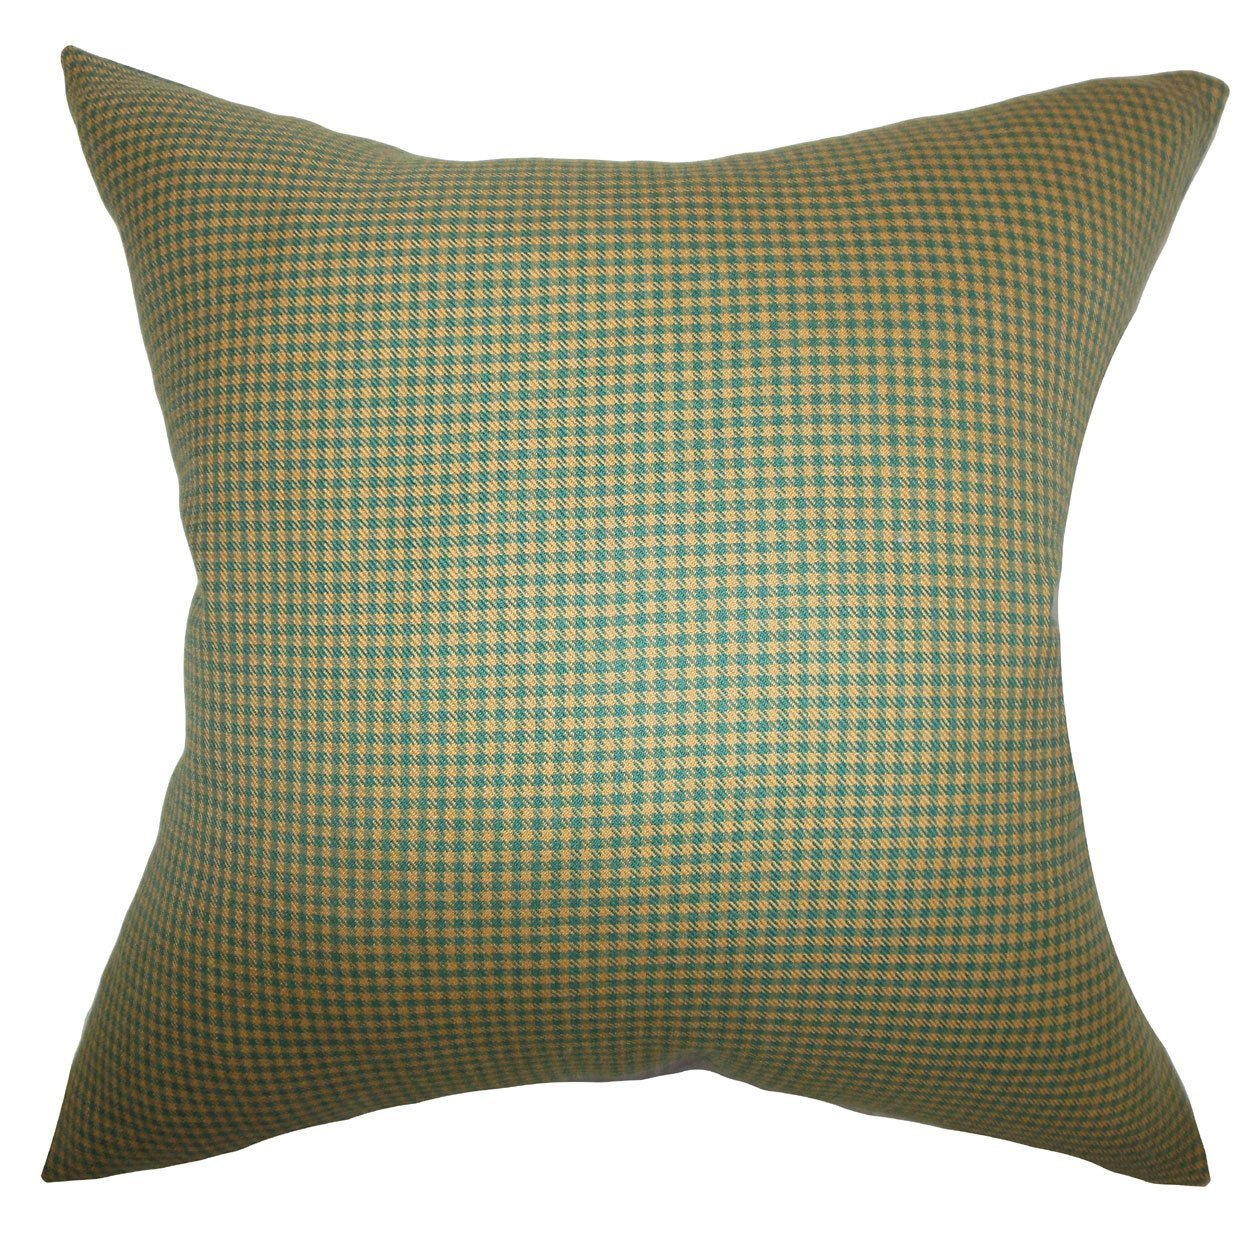 Green Cotton Plaid Contemporary Throw Pillow Cover